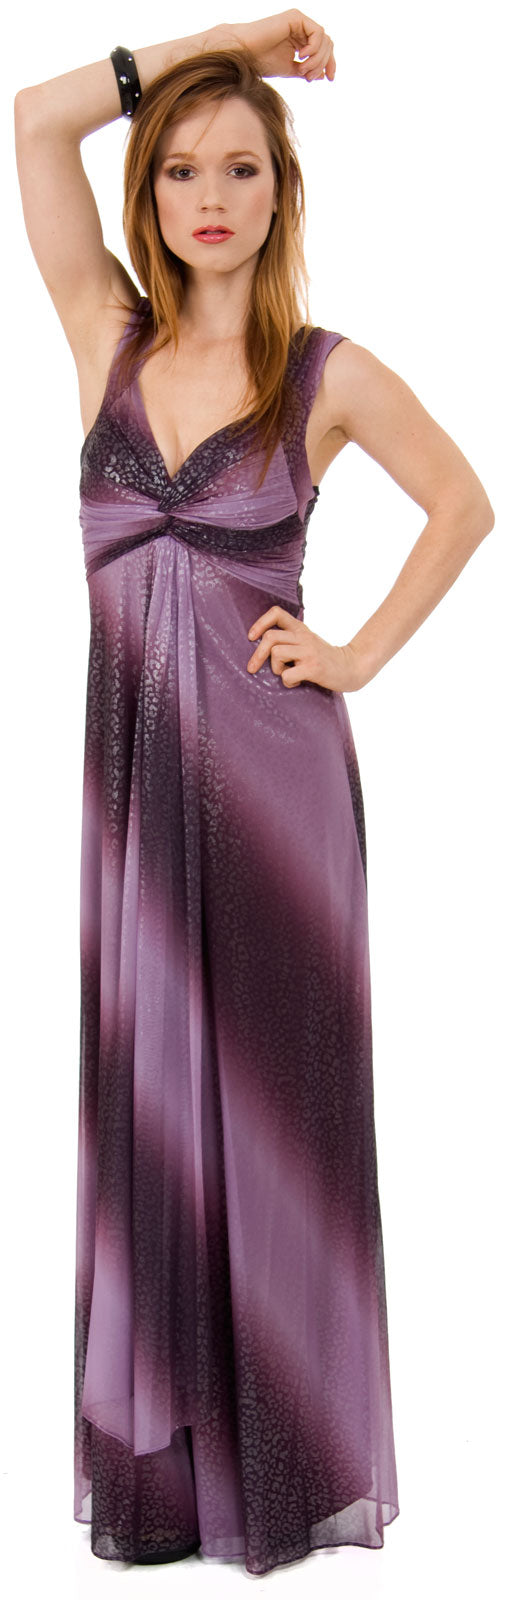 Image of Long Formal Ombre Dress With Metallic Animal Foiling  in Plum